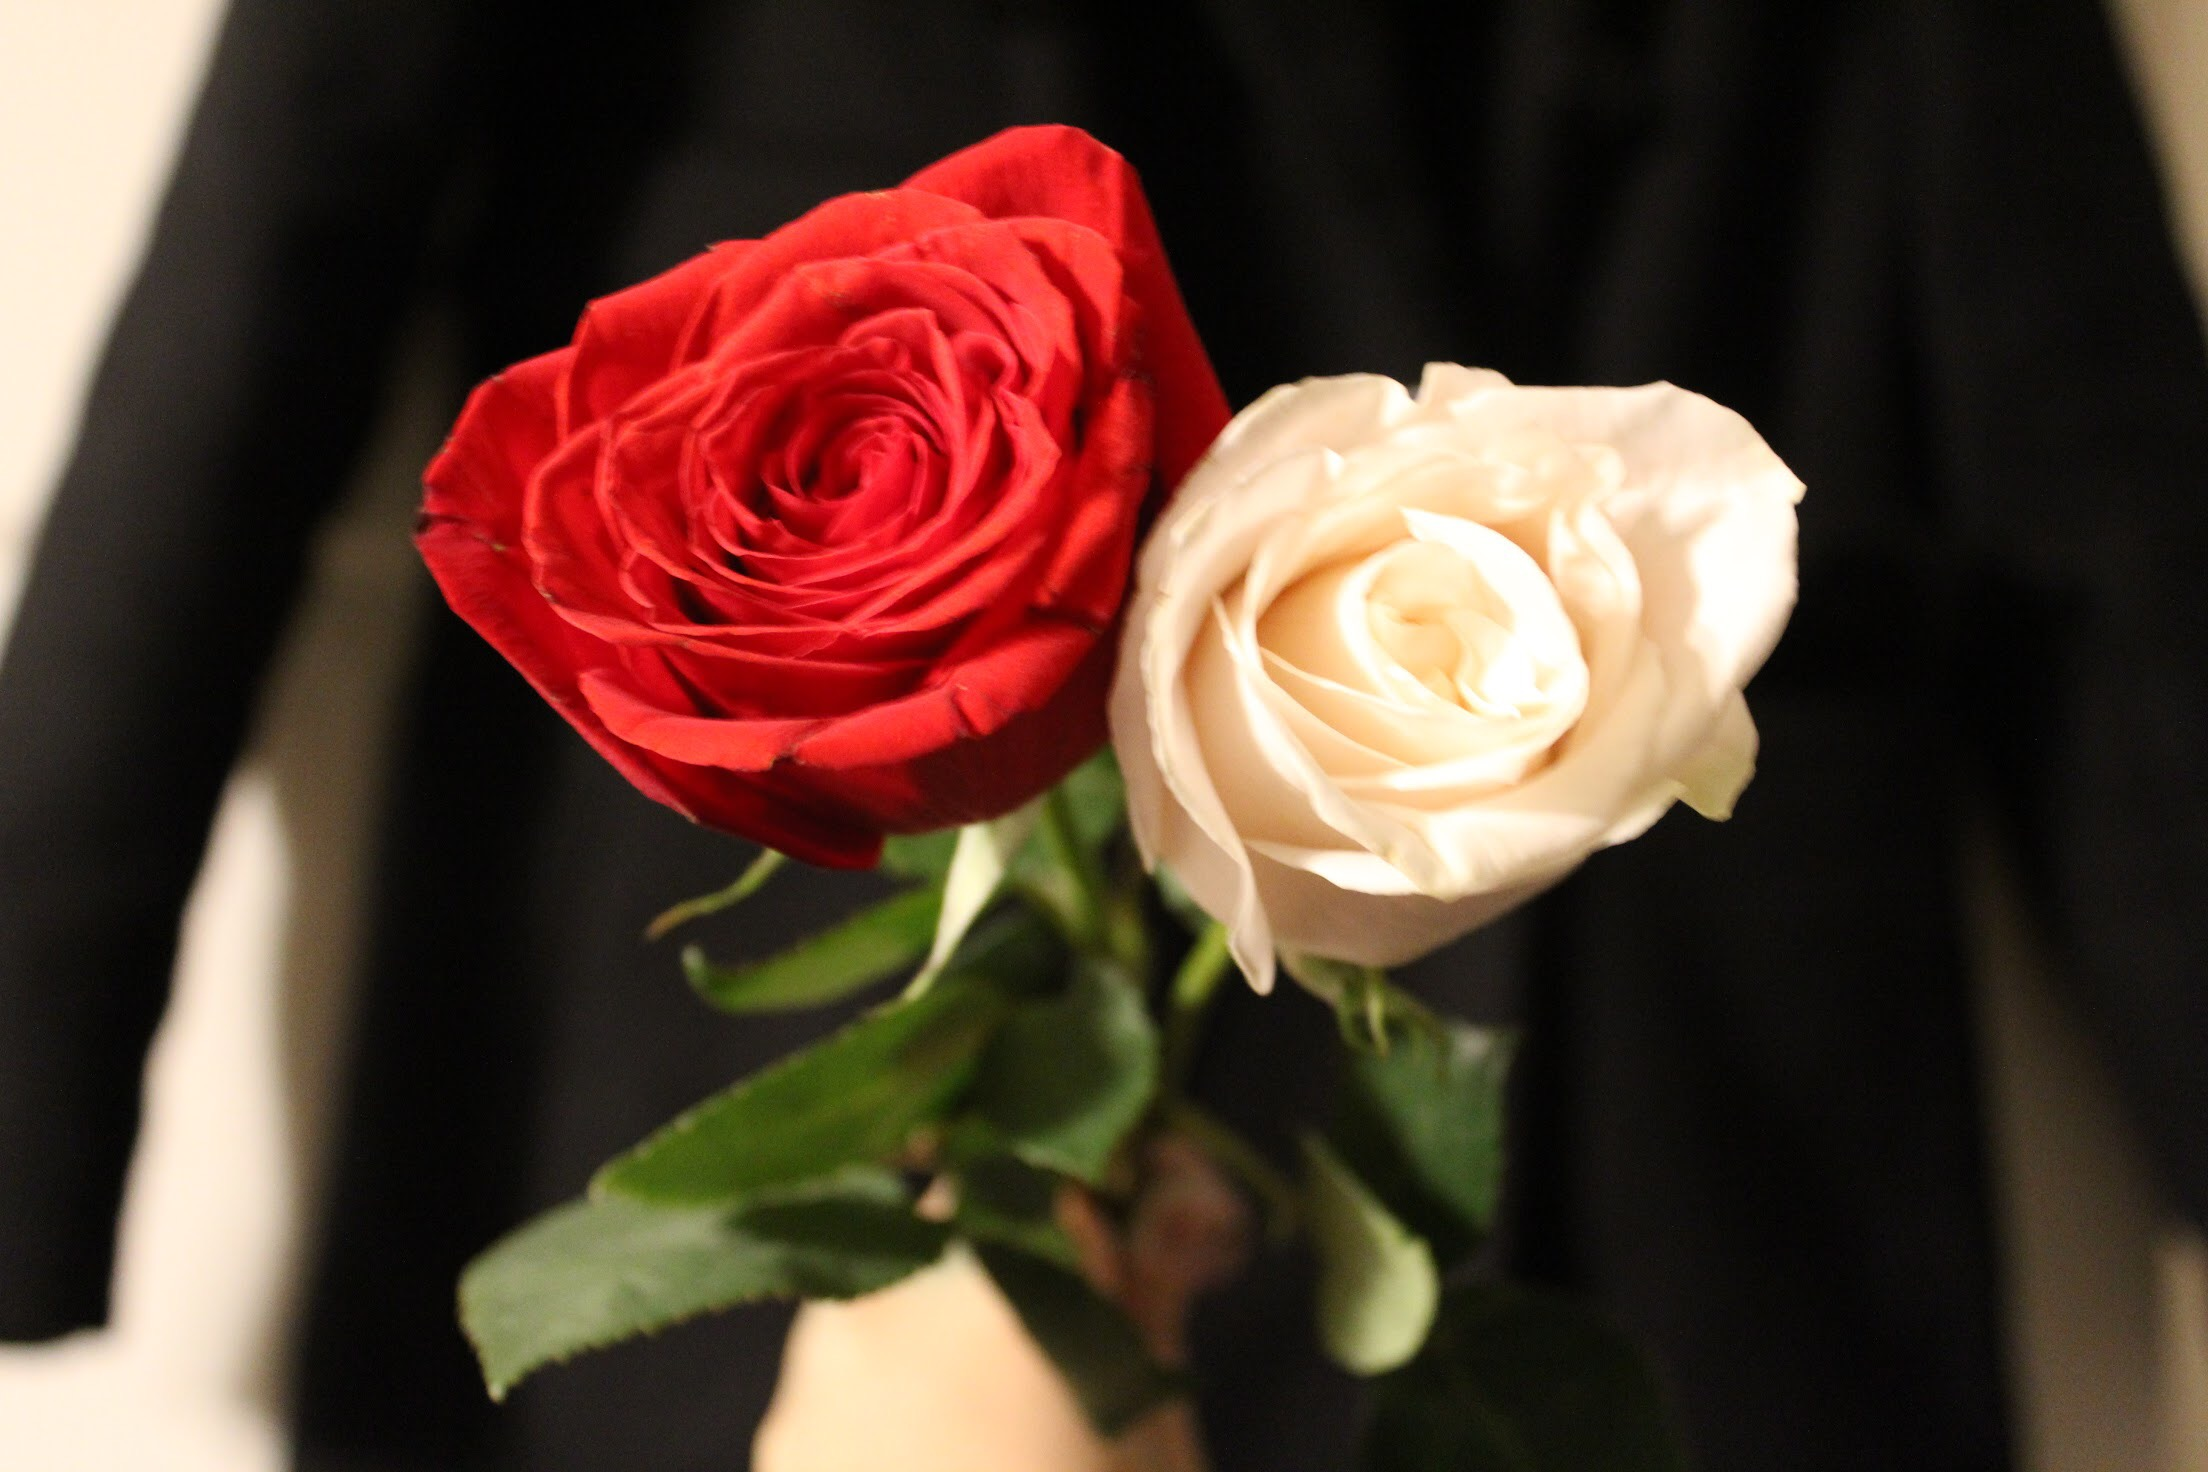 Project 4 Red Rose And White Rose Sijiascarlett